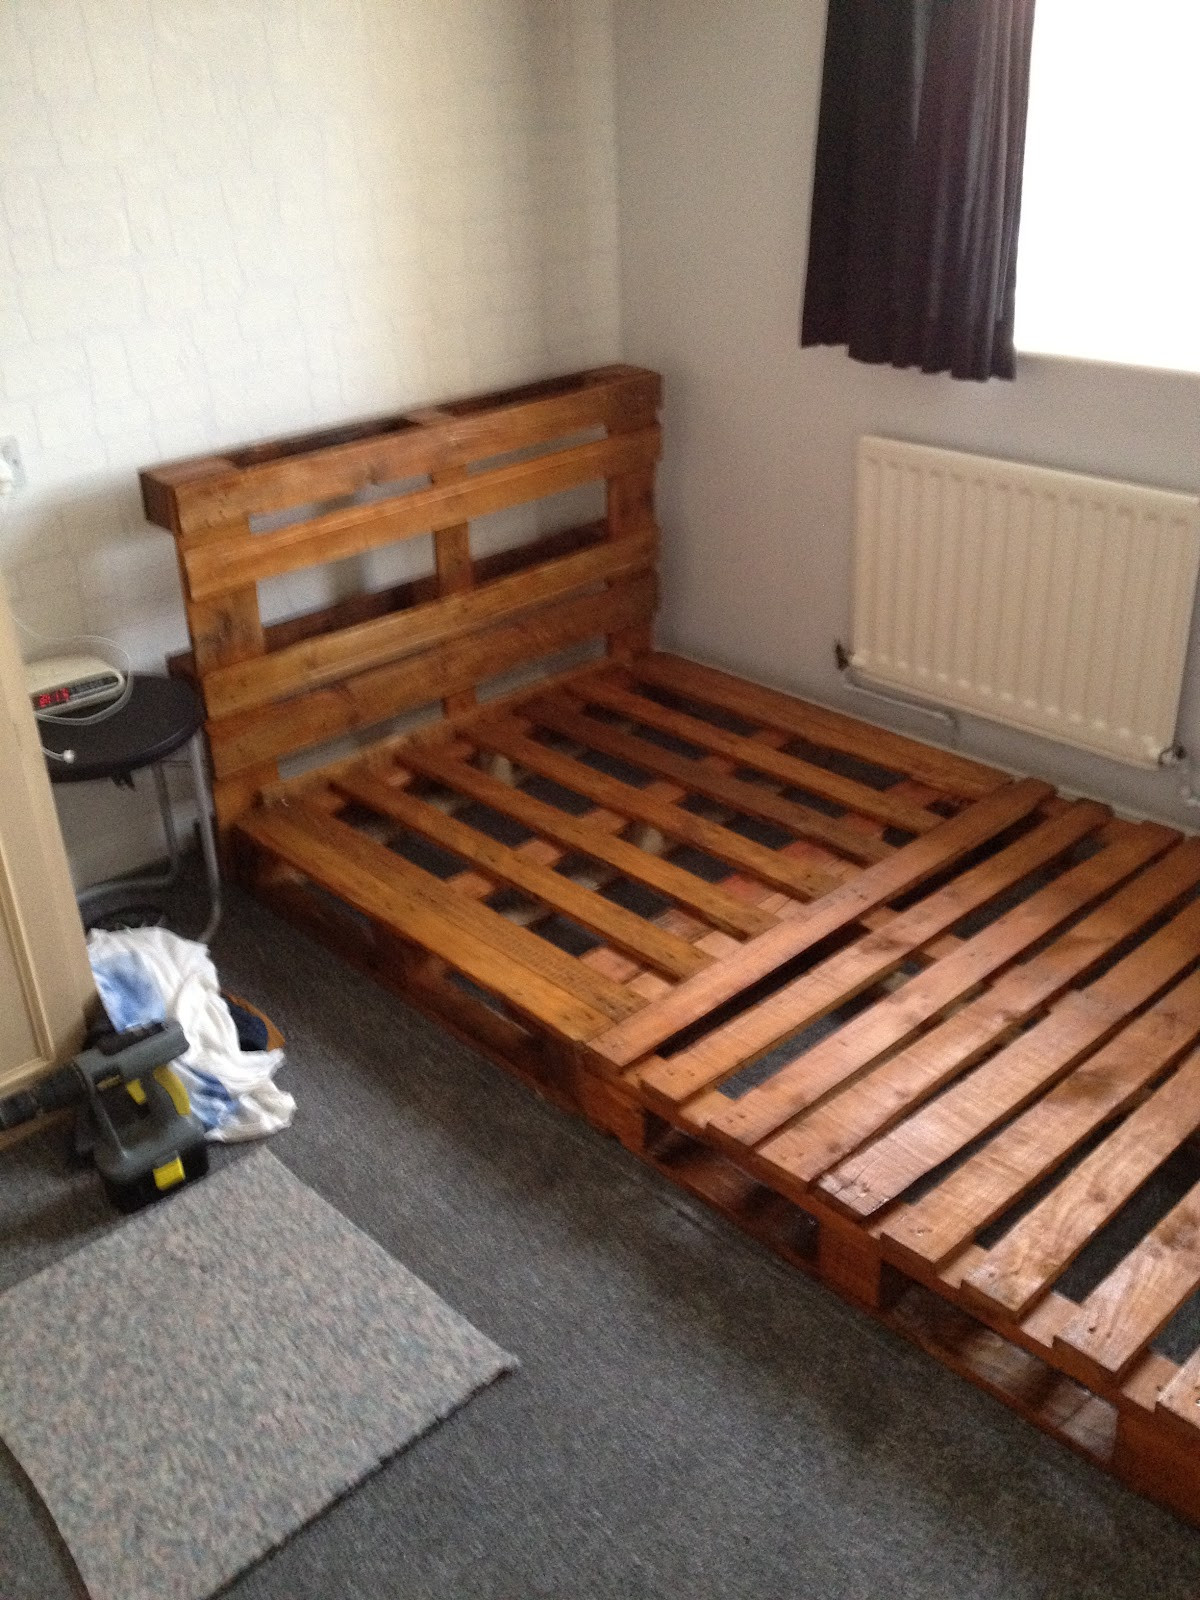 Best ideas about DIY Pallet Bed Frame . Save or Pin notinabox DIY Pallet Bed Now.